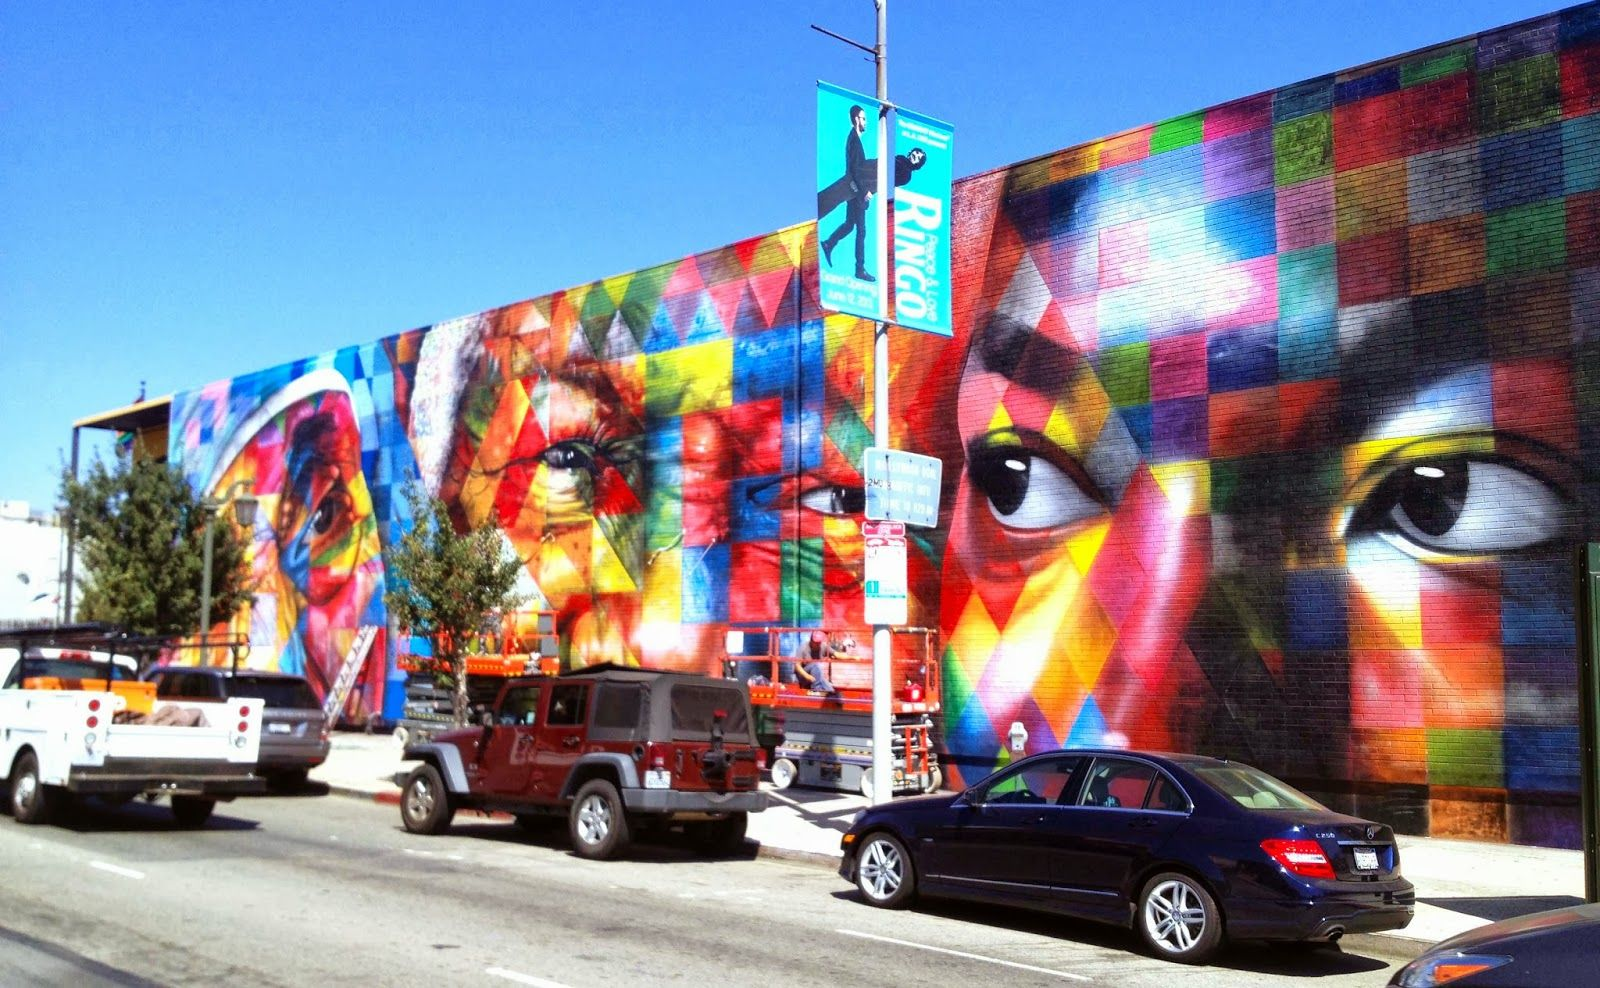 Second street art mural by brazilian painter eduardo kobra in los